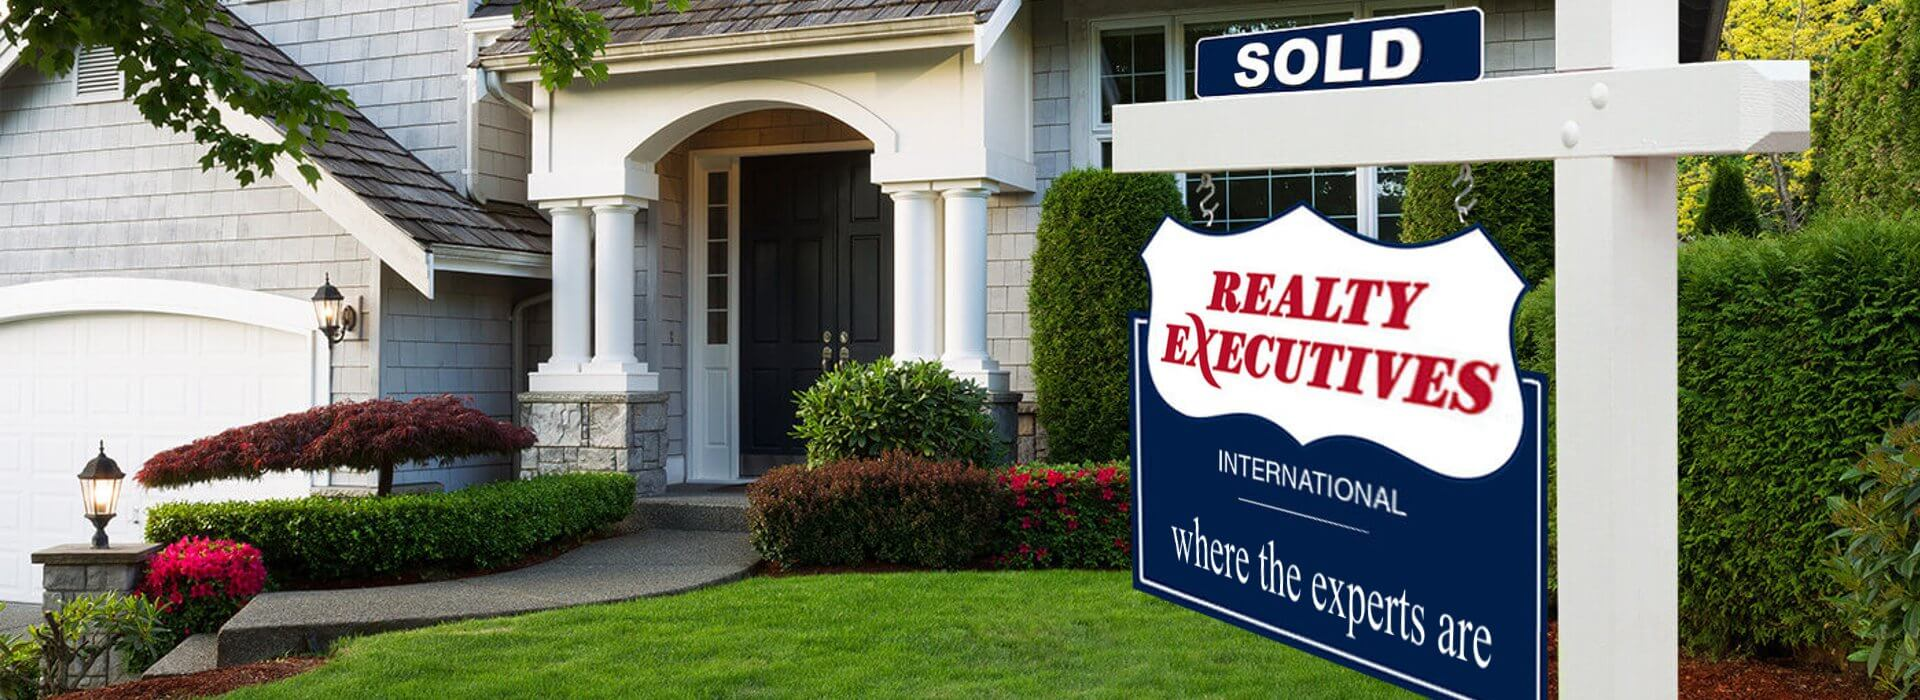 Sudduth Realty - Exceptional Service from Exceptional People